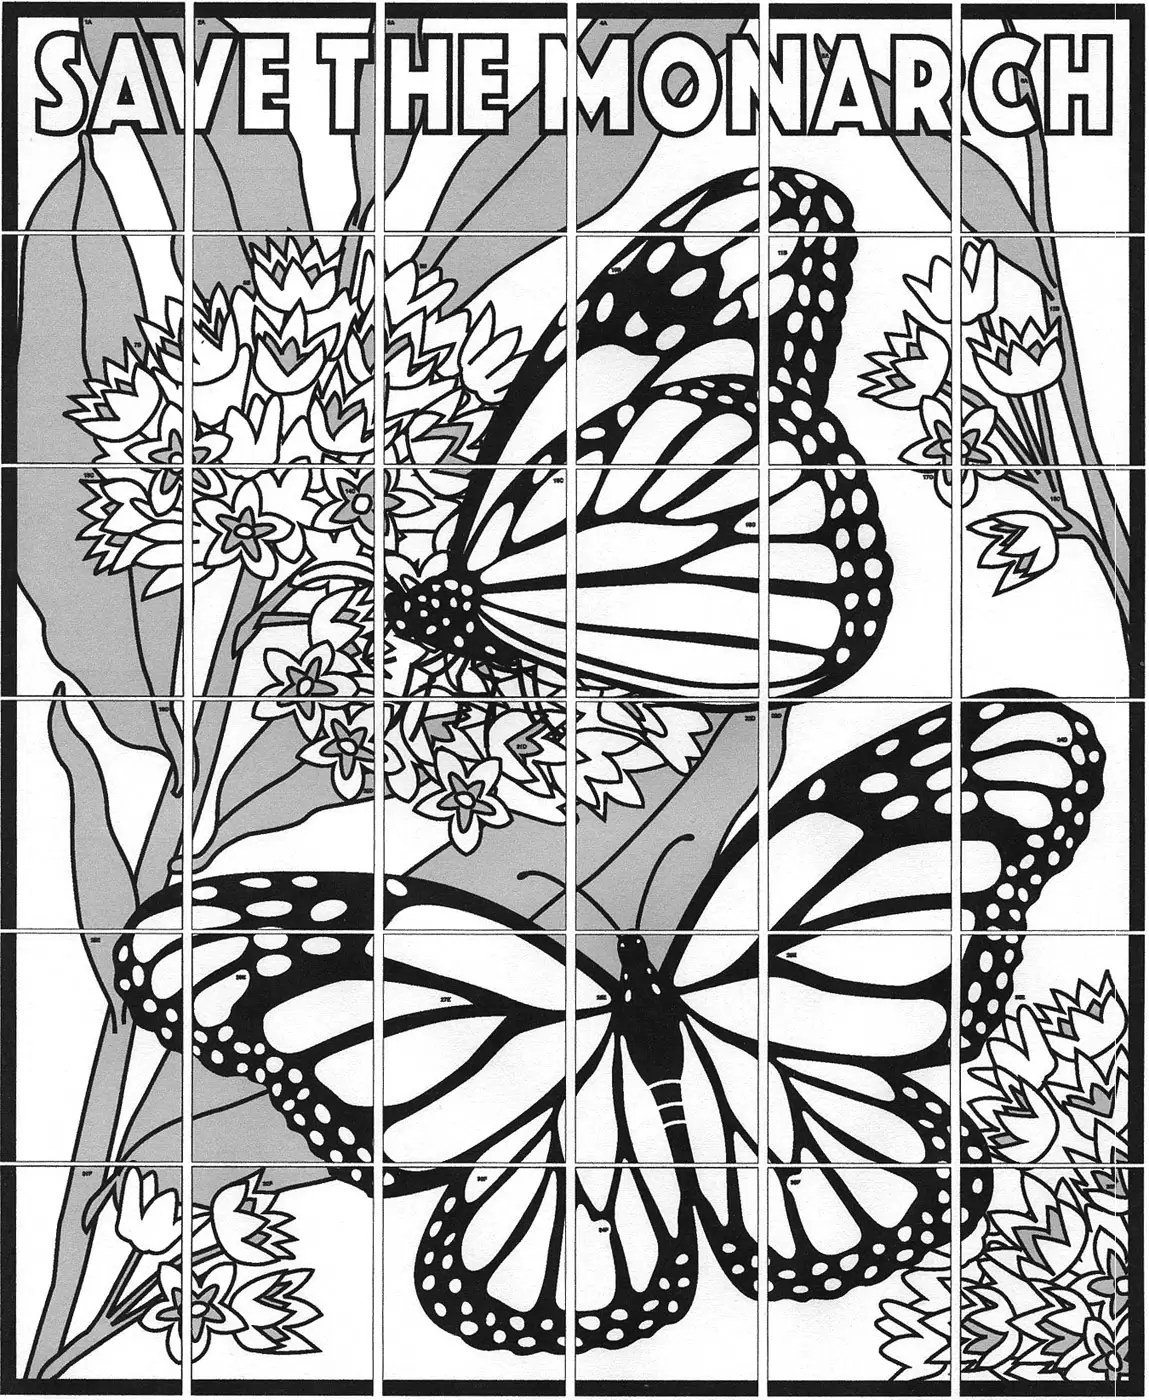 Monarch Mural Art Projects For Kids